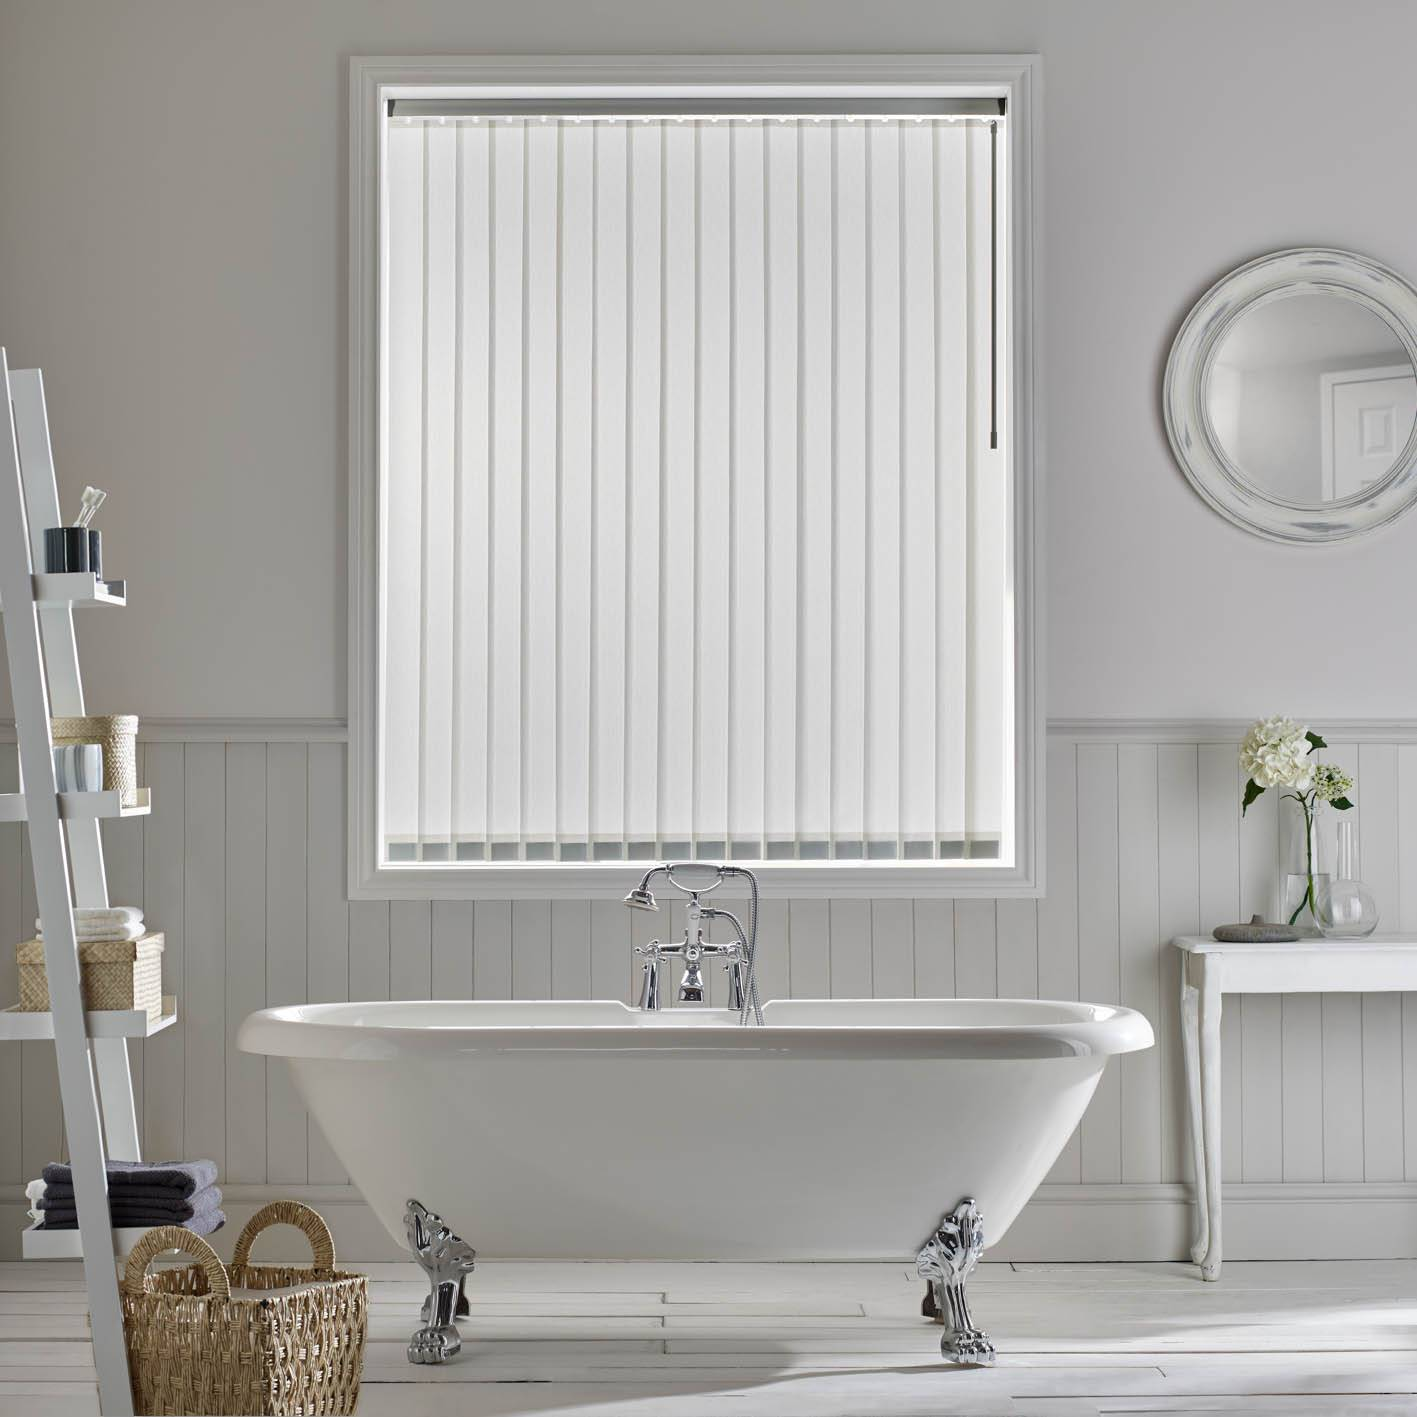 White vertical blind in a bathroom window